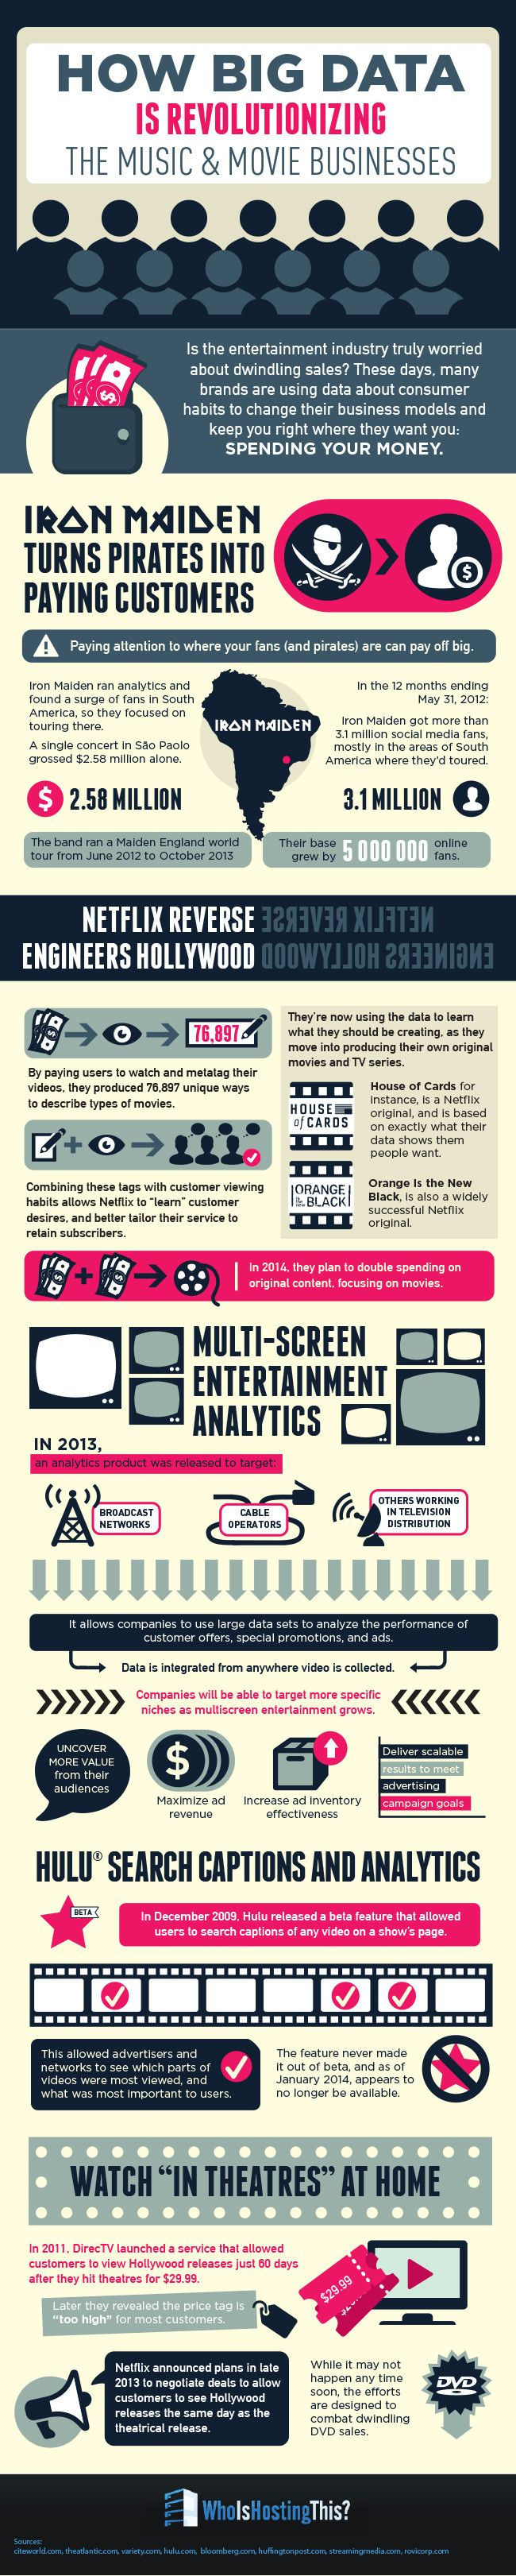 [Infographic] How Big Data is Revolutionizing the Music and Movie Business 8/28/15